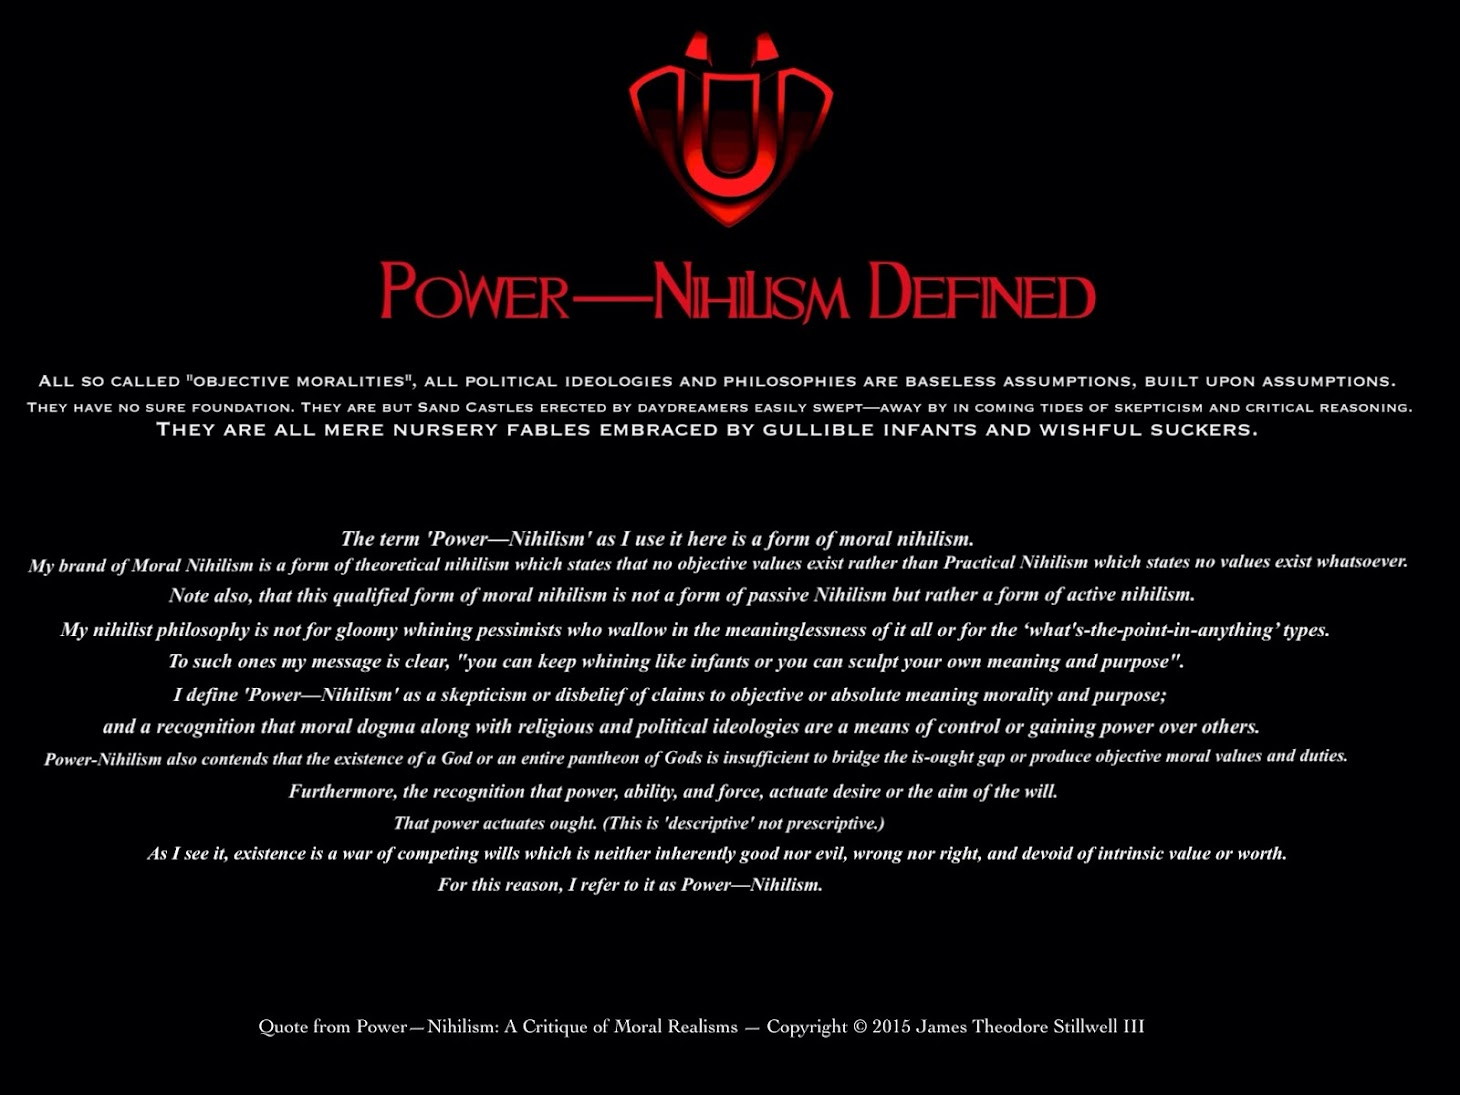 Power—Nihilism: A Case For Moral & Political Nihilism (Ebook)